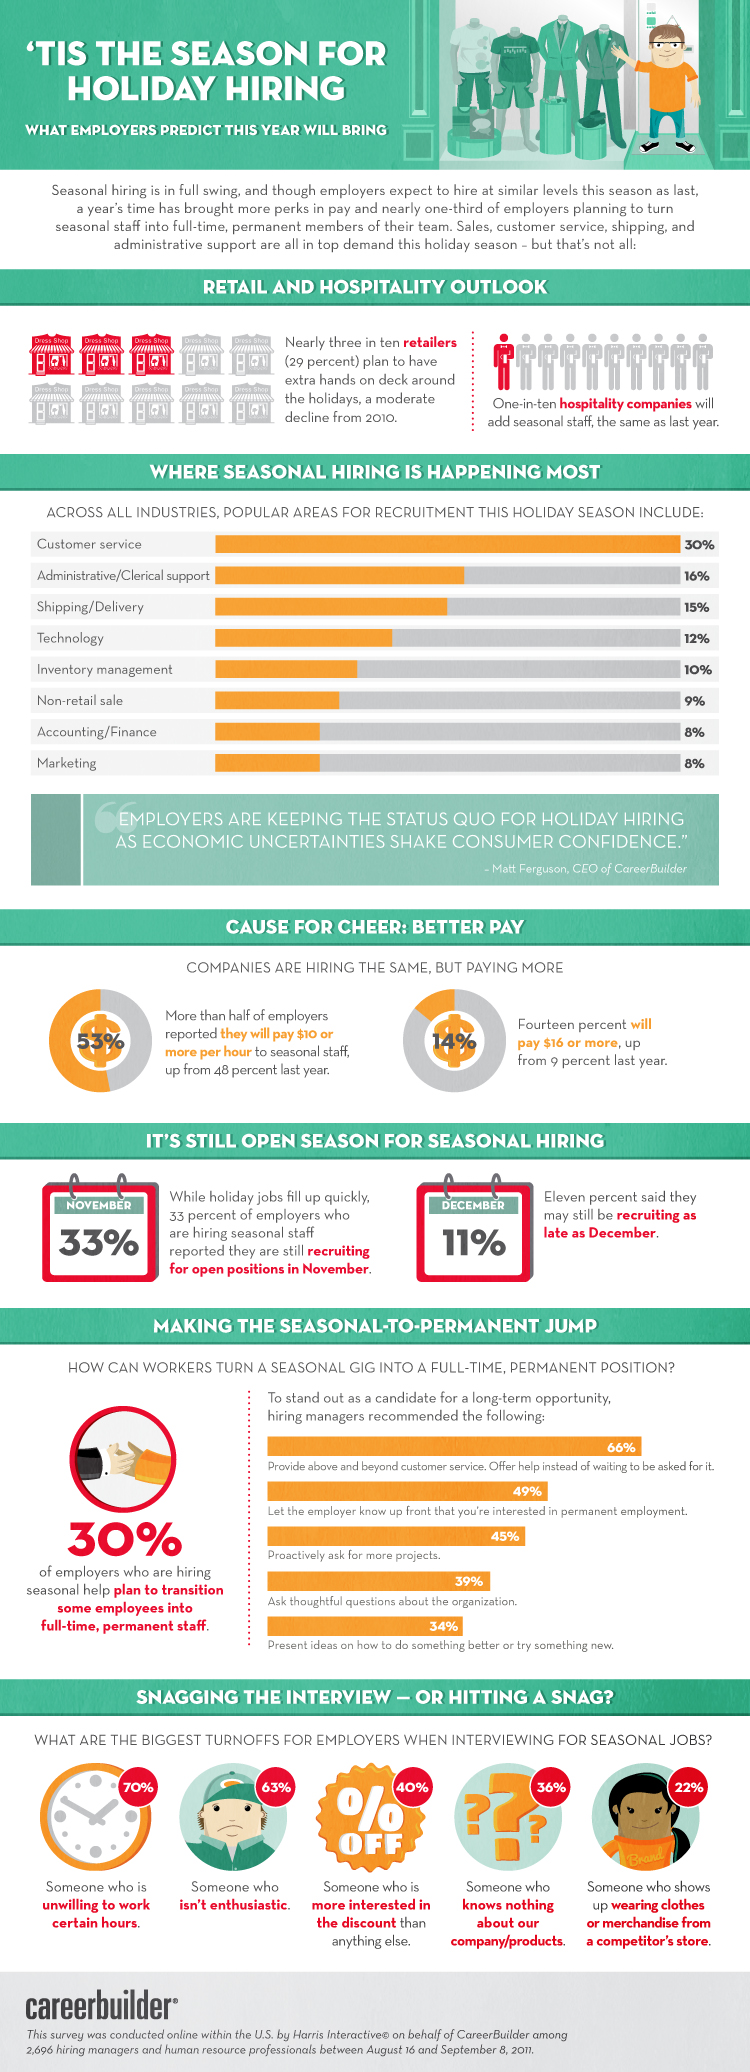 2011 study on seasonal hiring